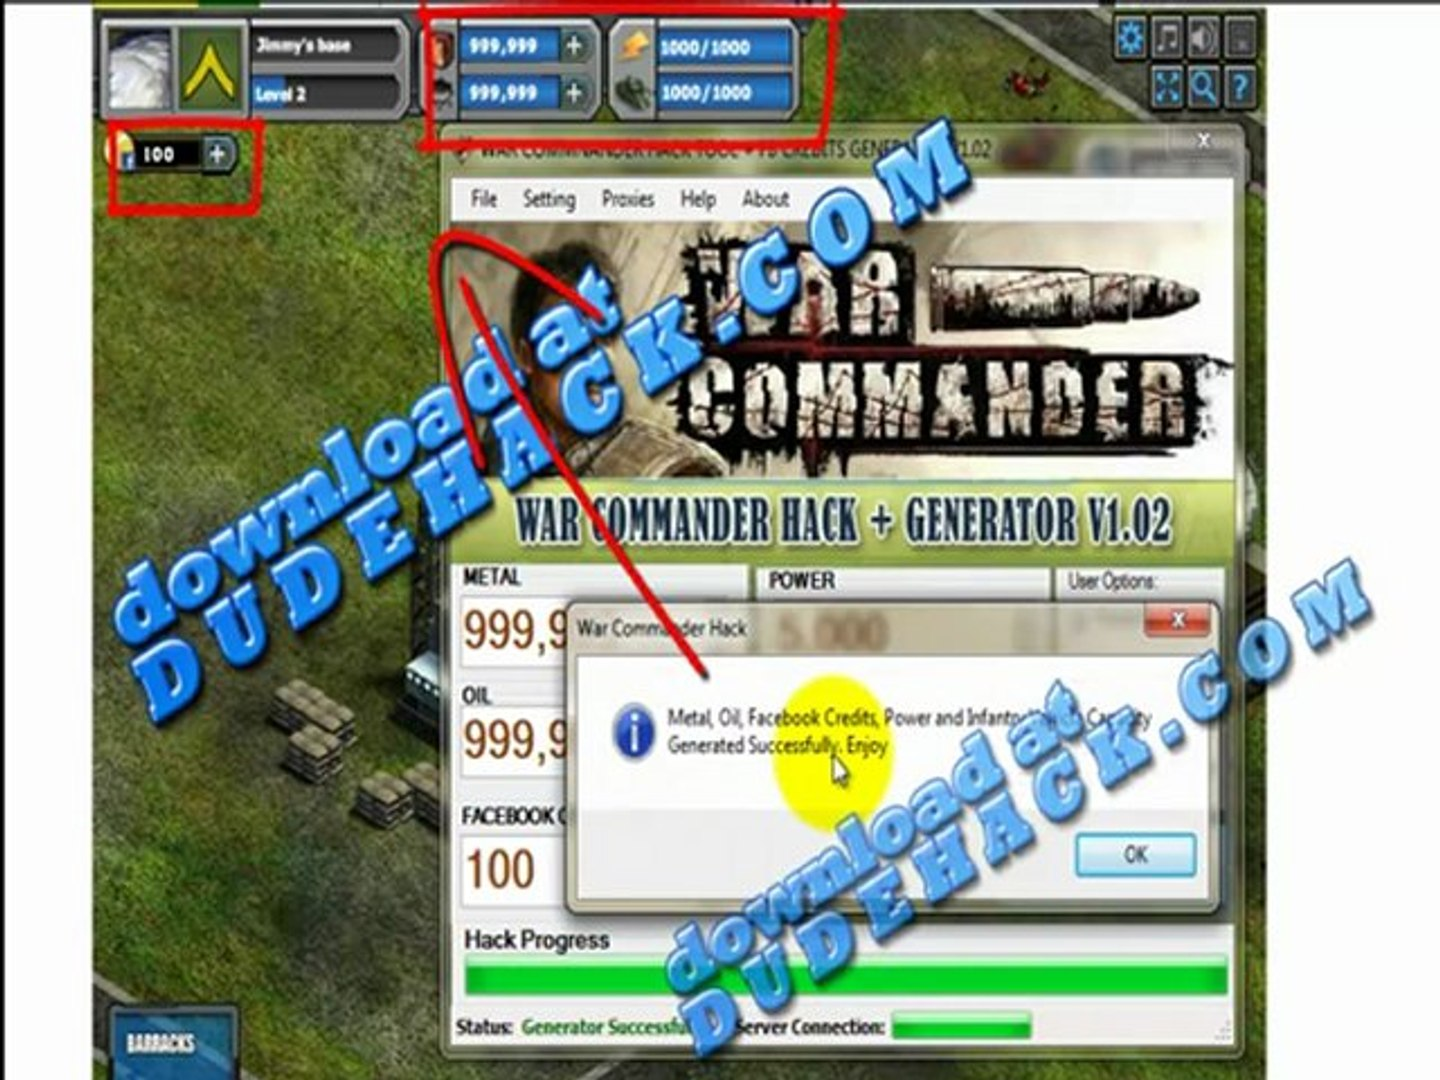 War Commander Cheat Engine for unlimited FB Credits and Metal - Functioning War Commander Cash Cheat